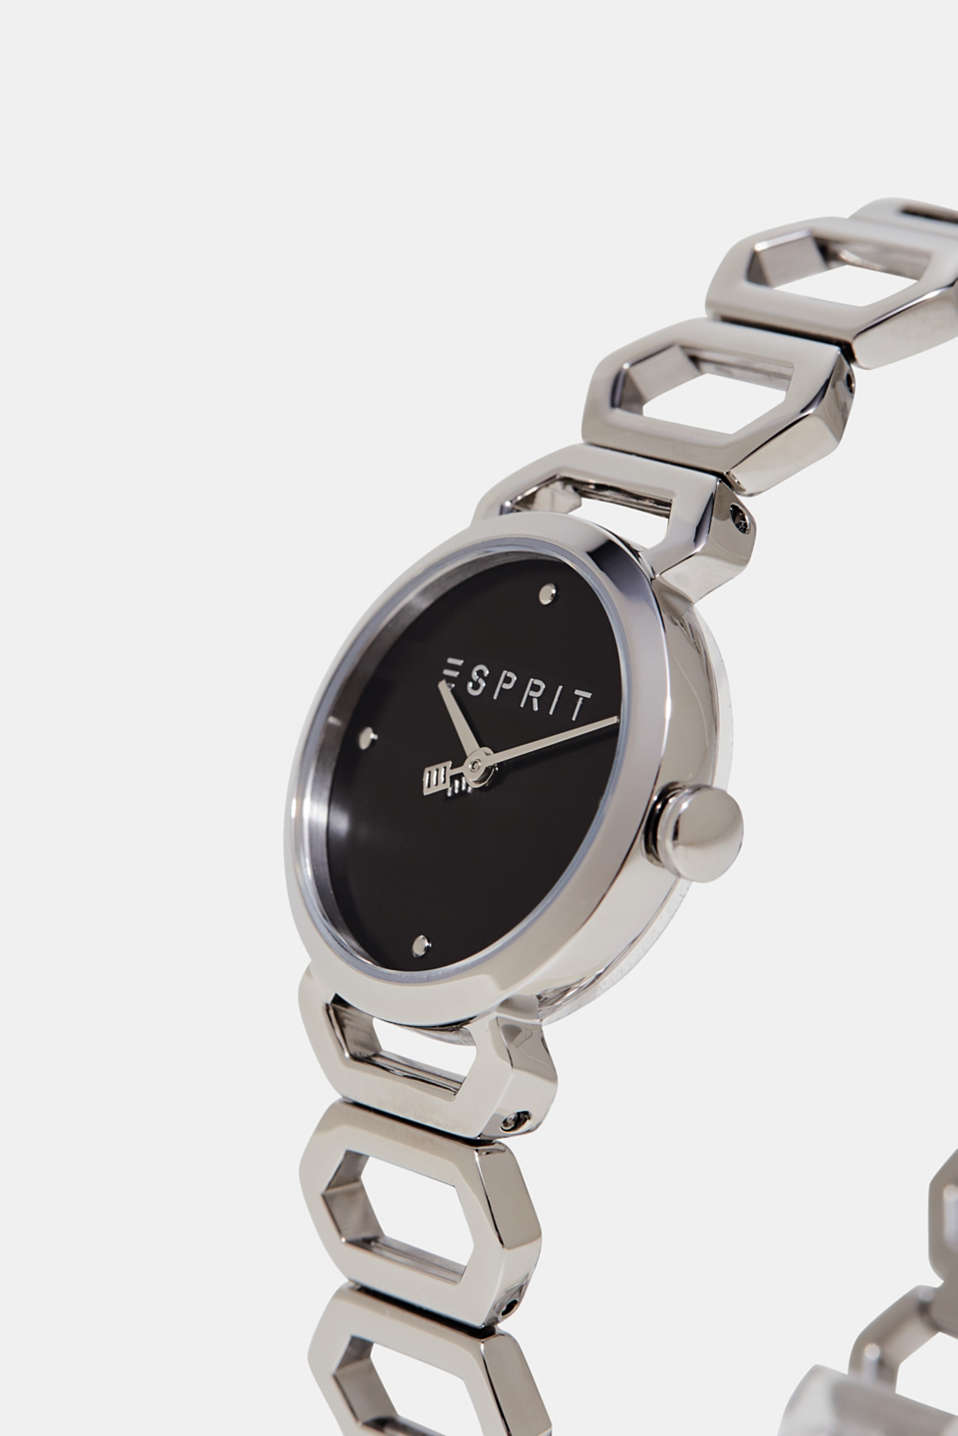 Stainless-steel watch with a link strap